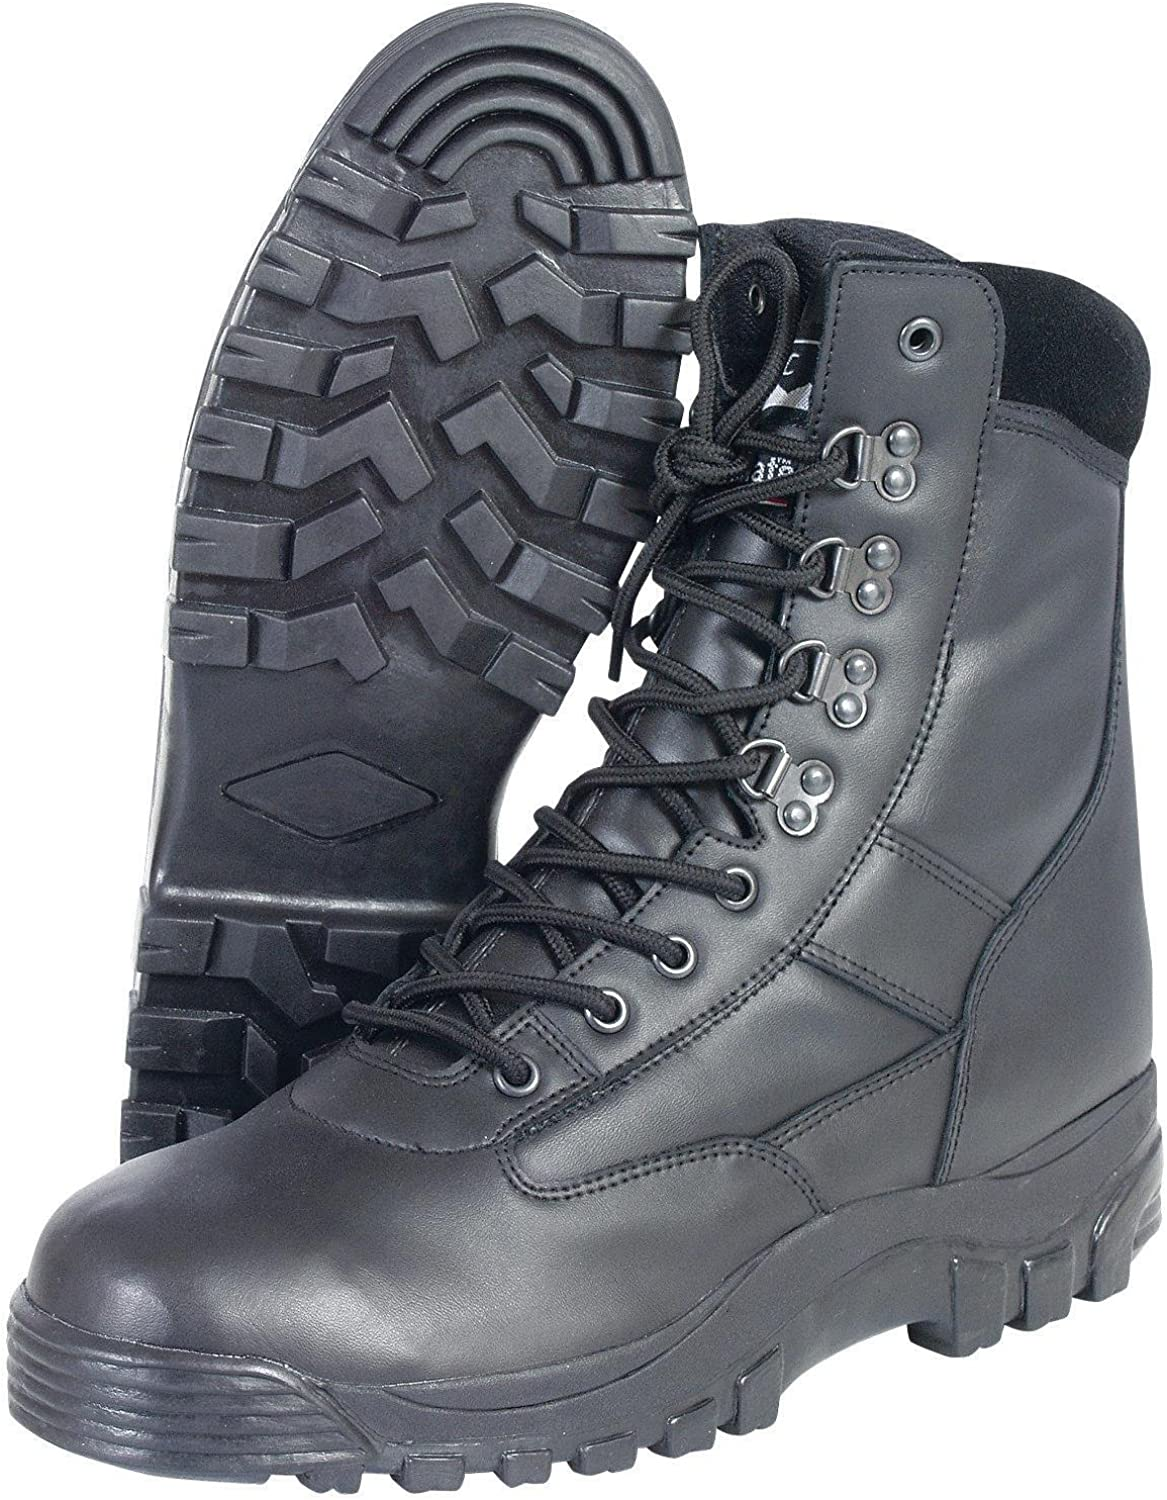 Milcom British Military Products - Boots All Leather